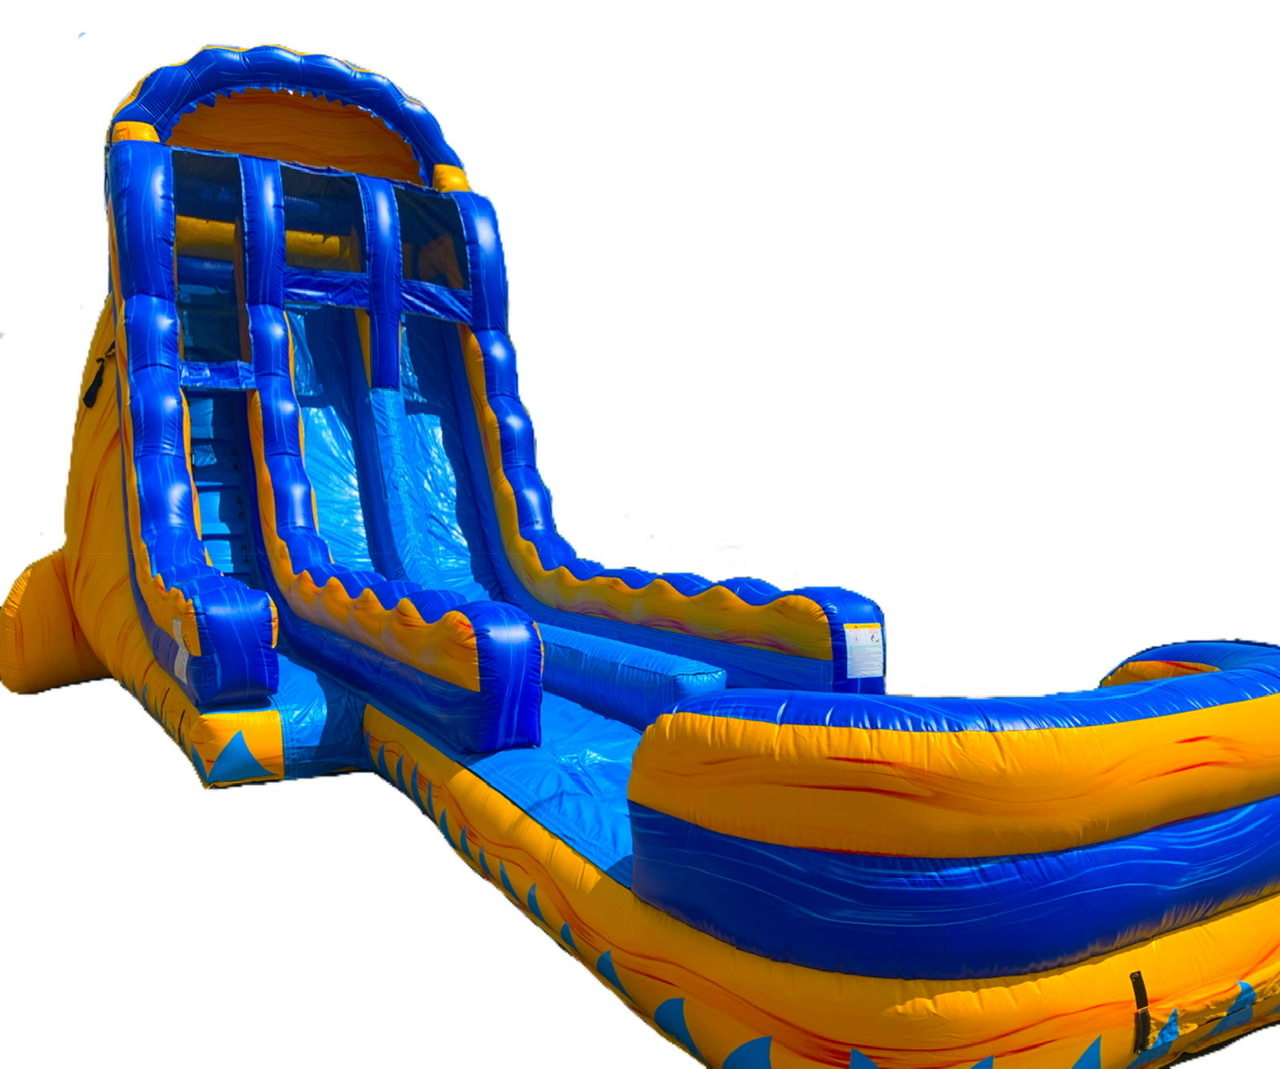 Riptide 19ft Dual Lane Inflatable Water Slide